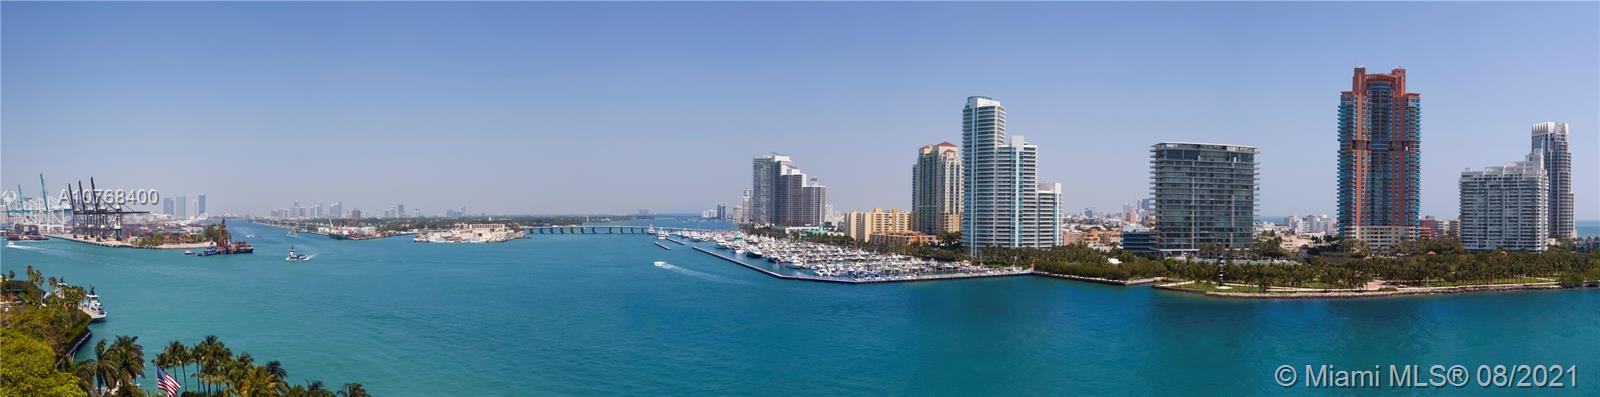 6893 Fisher Island Dr  6893